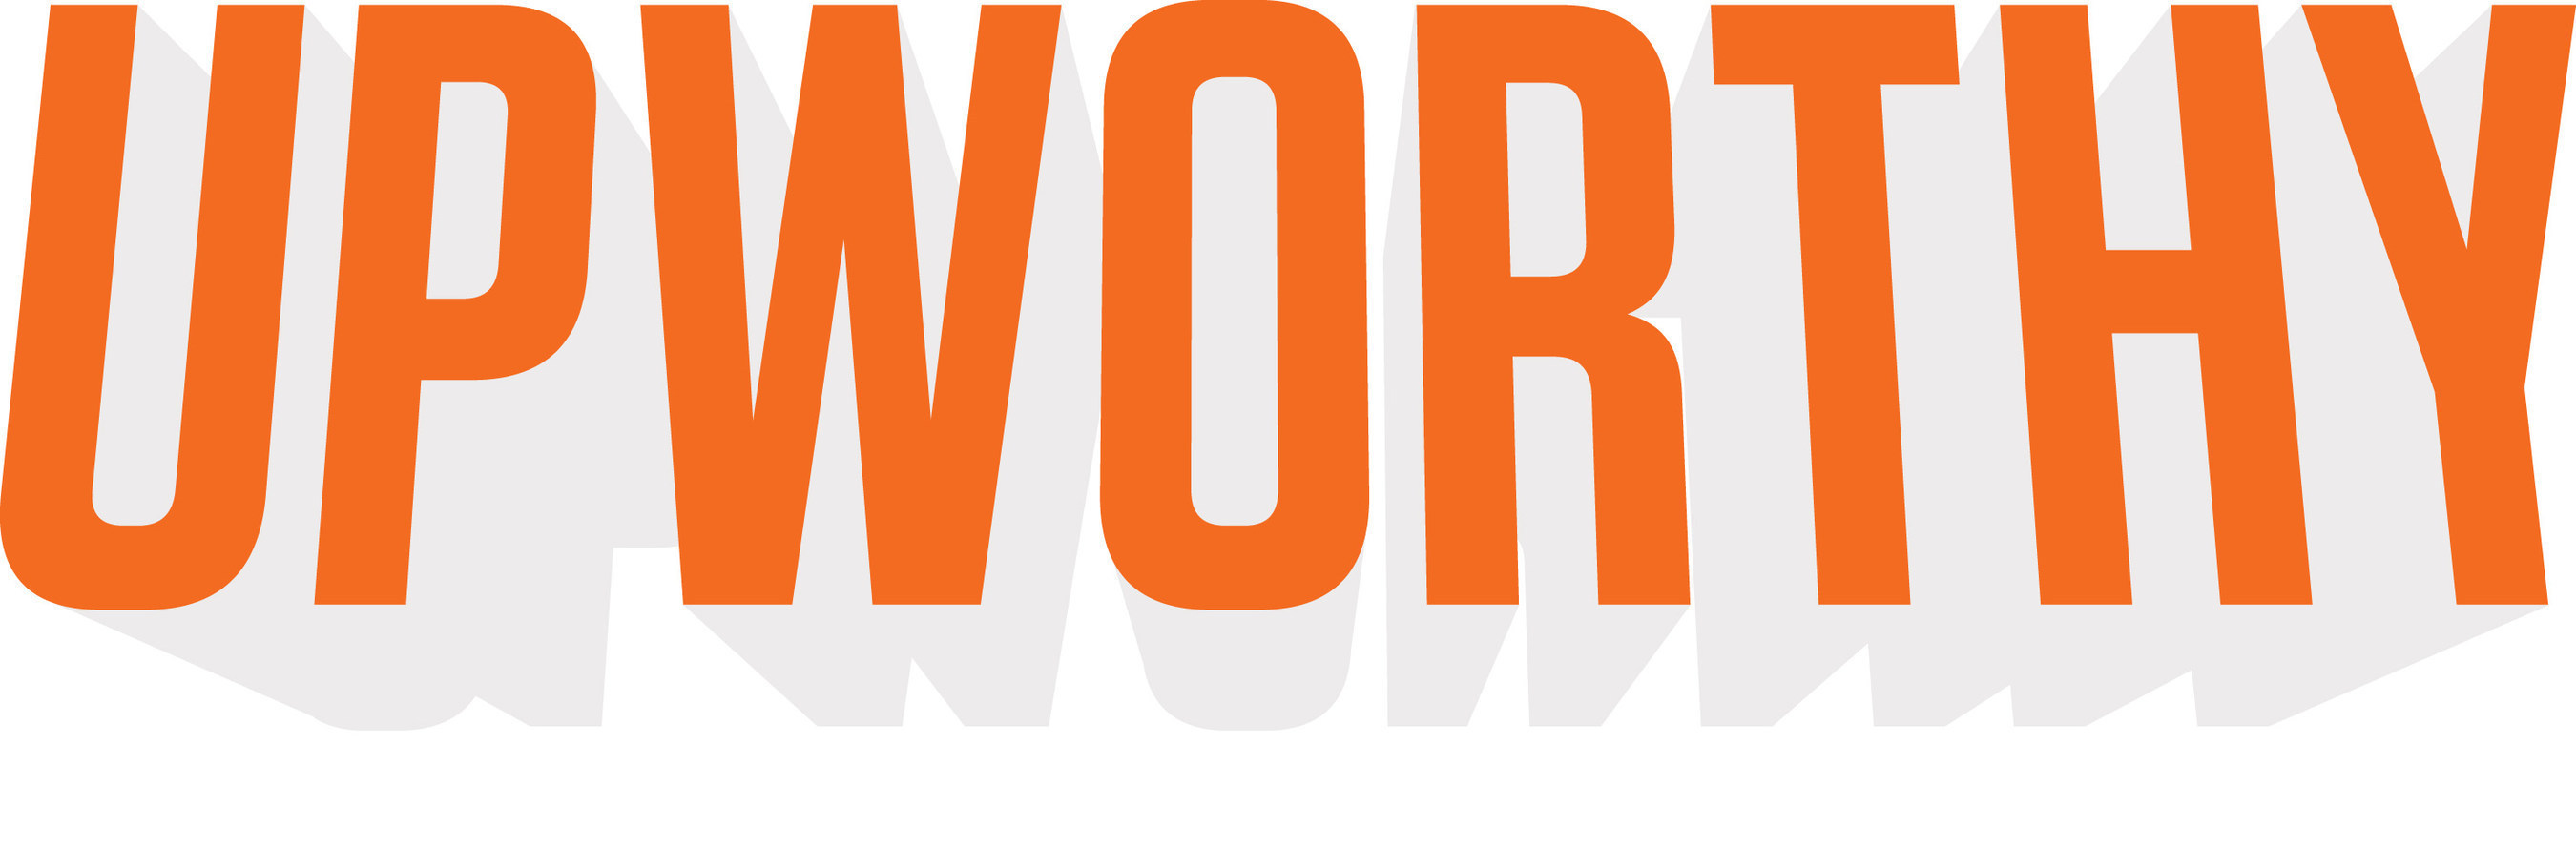 2014 Report: Upworthy Collaborations Generates $10 Million In Revenue In 9 Months Since Launch